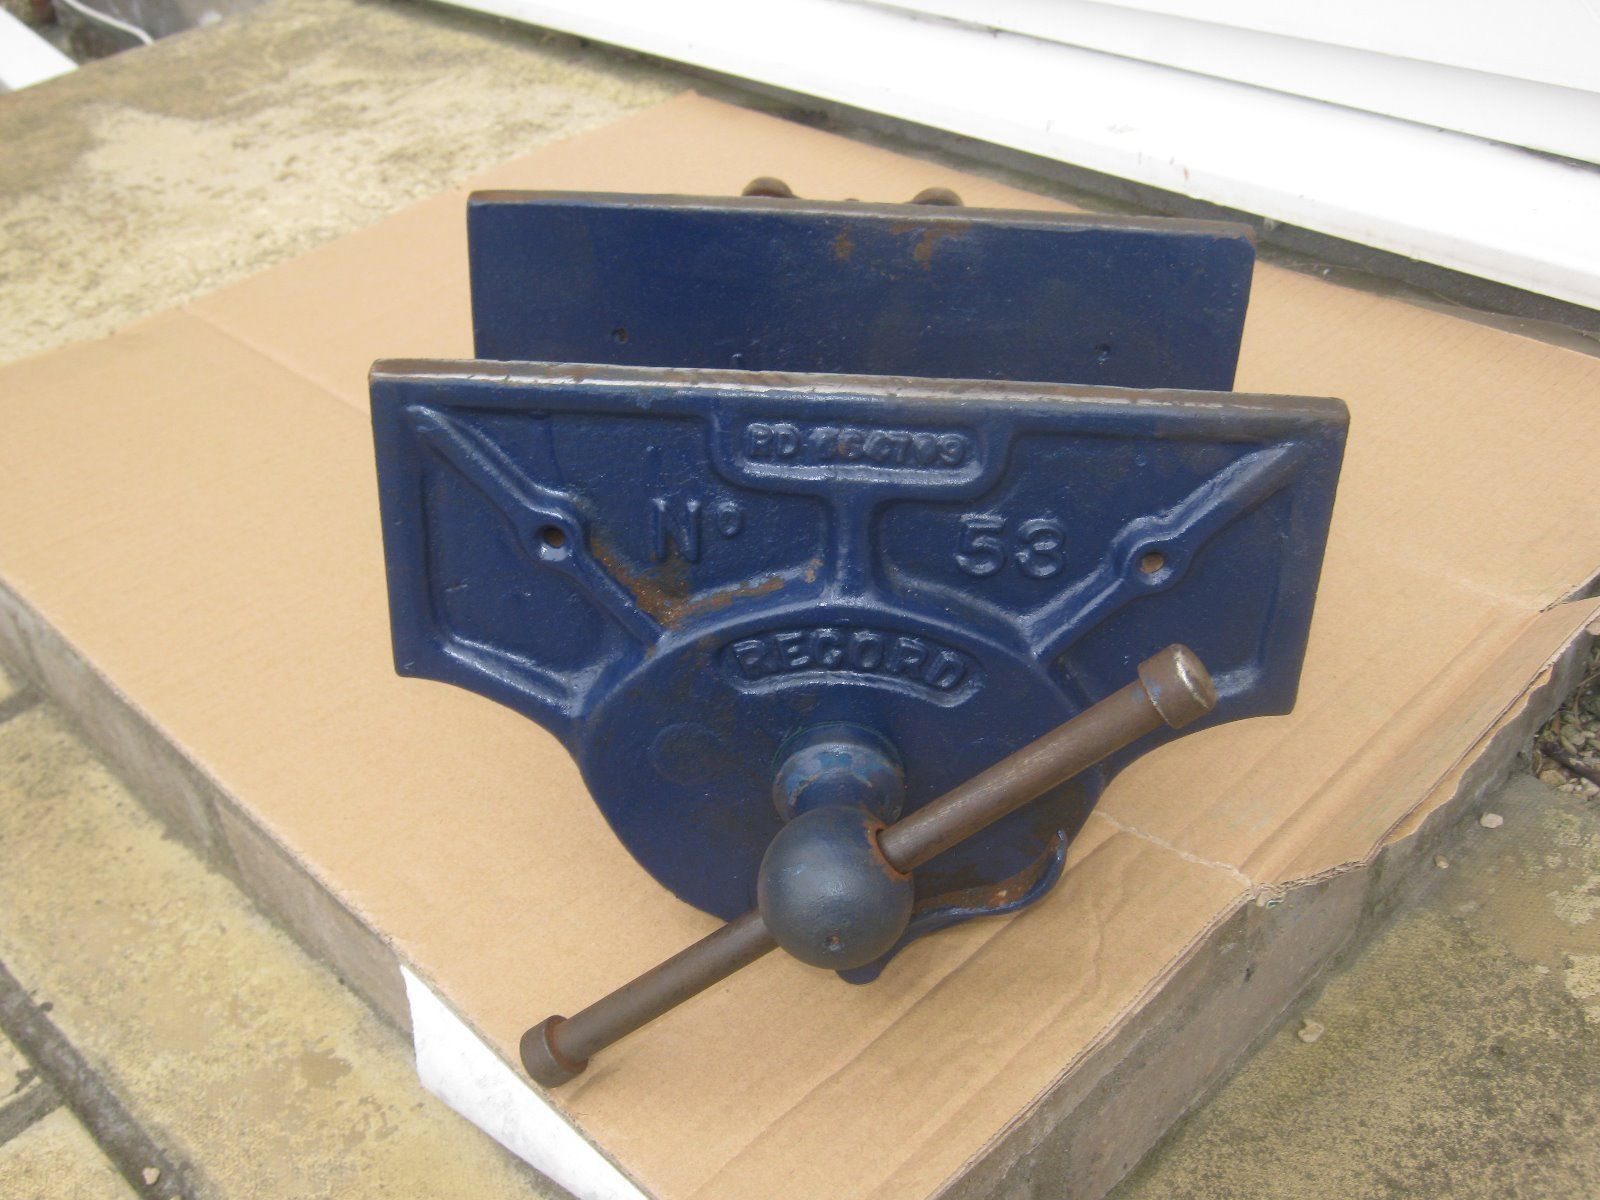 A Large Carpenter S Woodworking Vice By Record Number 53 With Quick